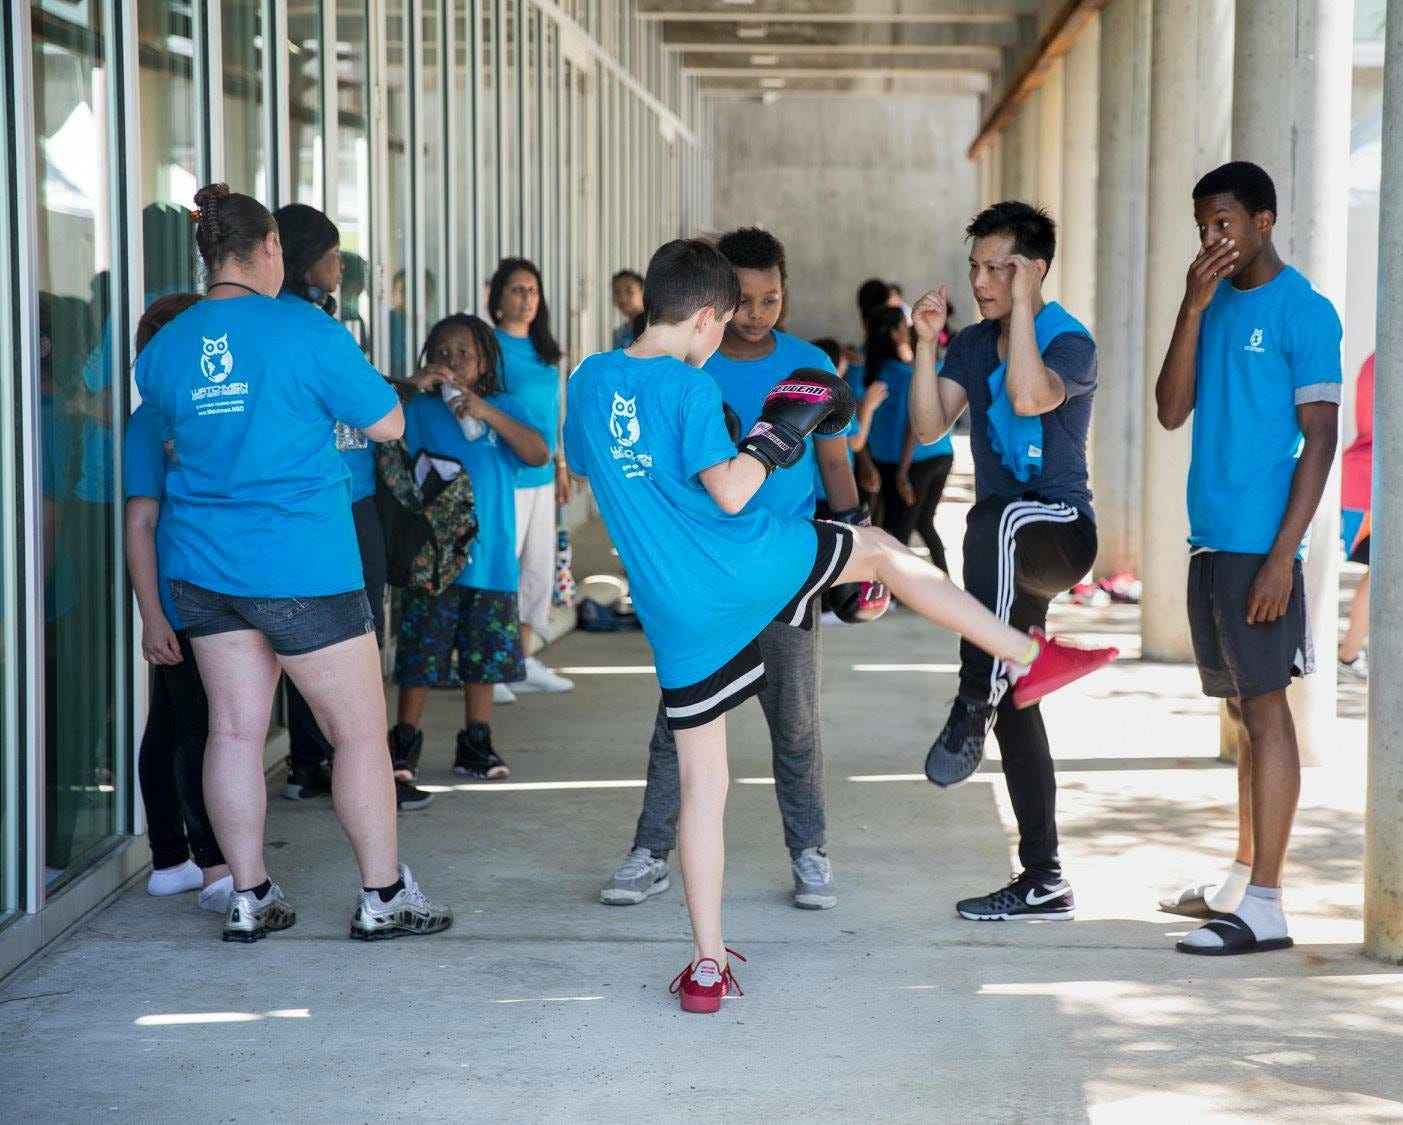 Watchmen Training Center trains youth and shows them self-defense to build confidence so they can protect themselves and others.